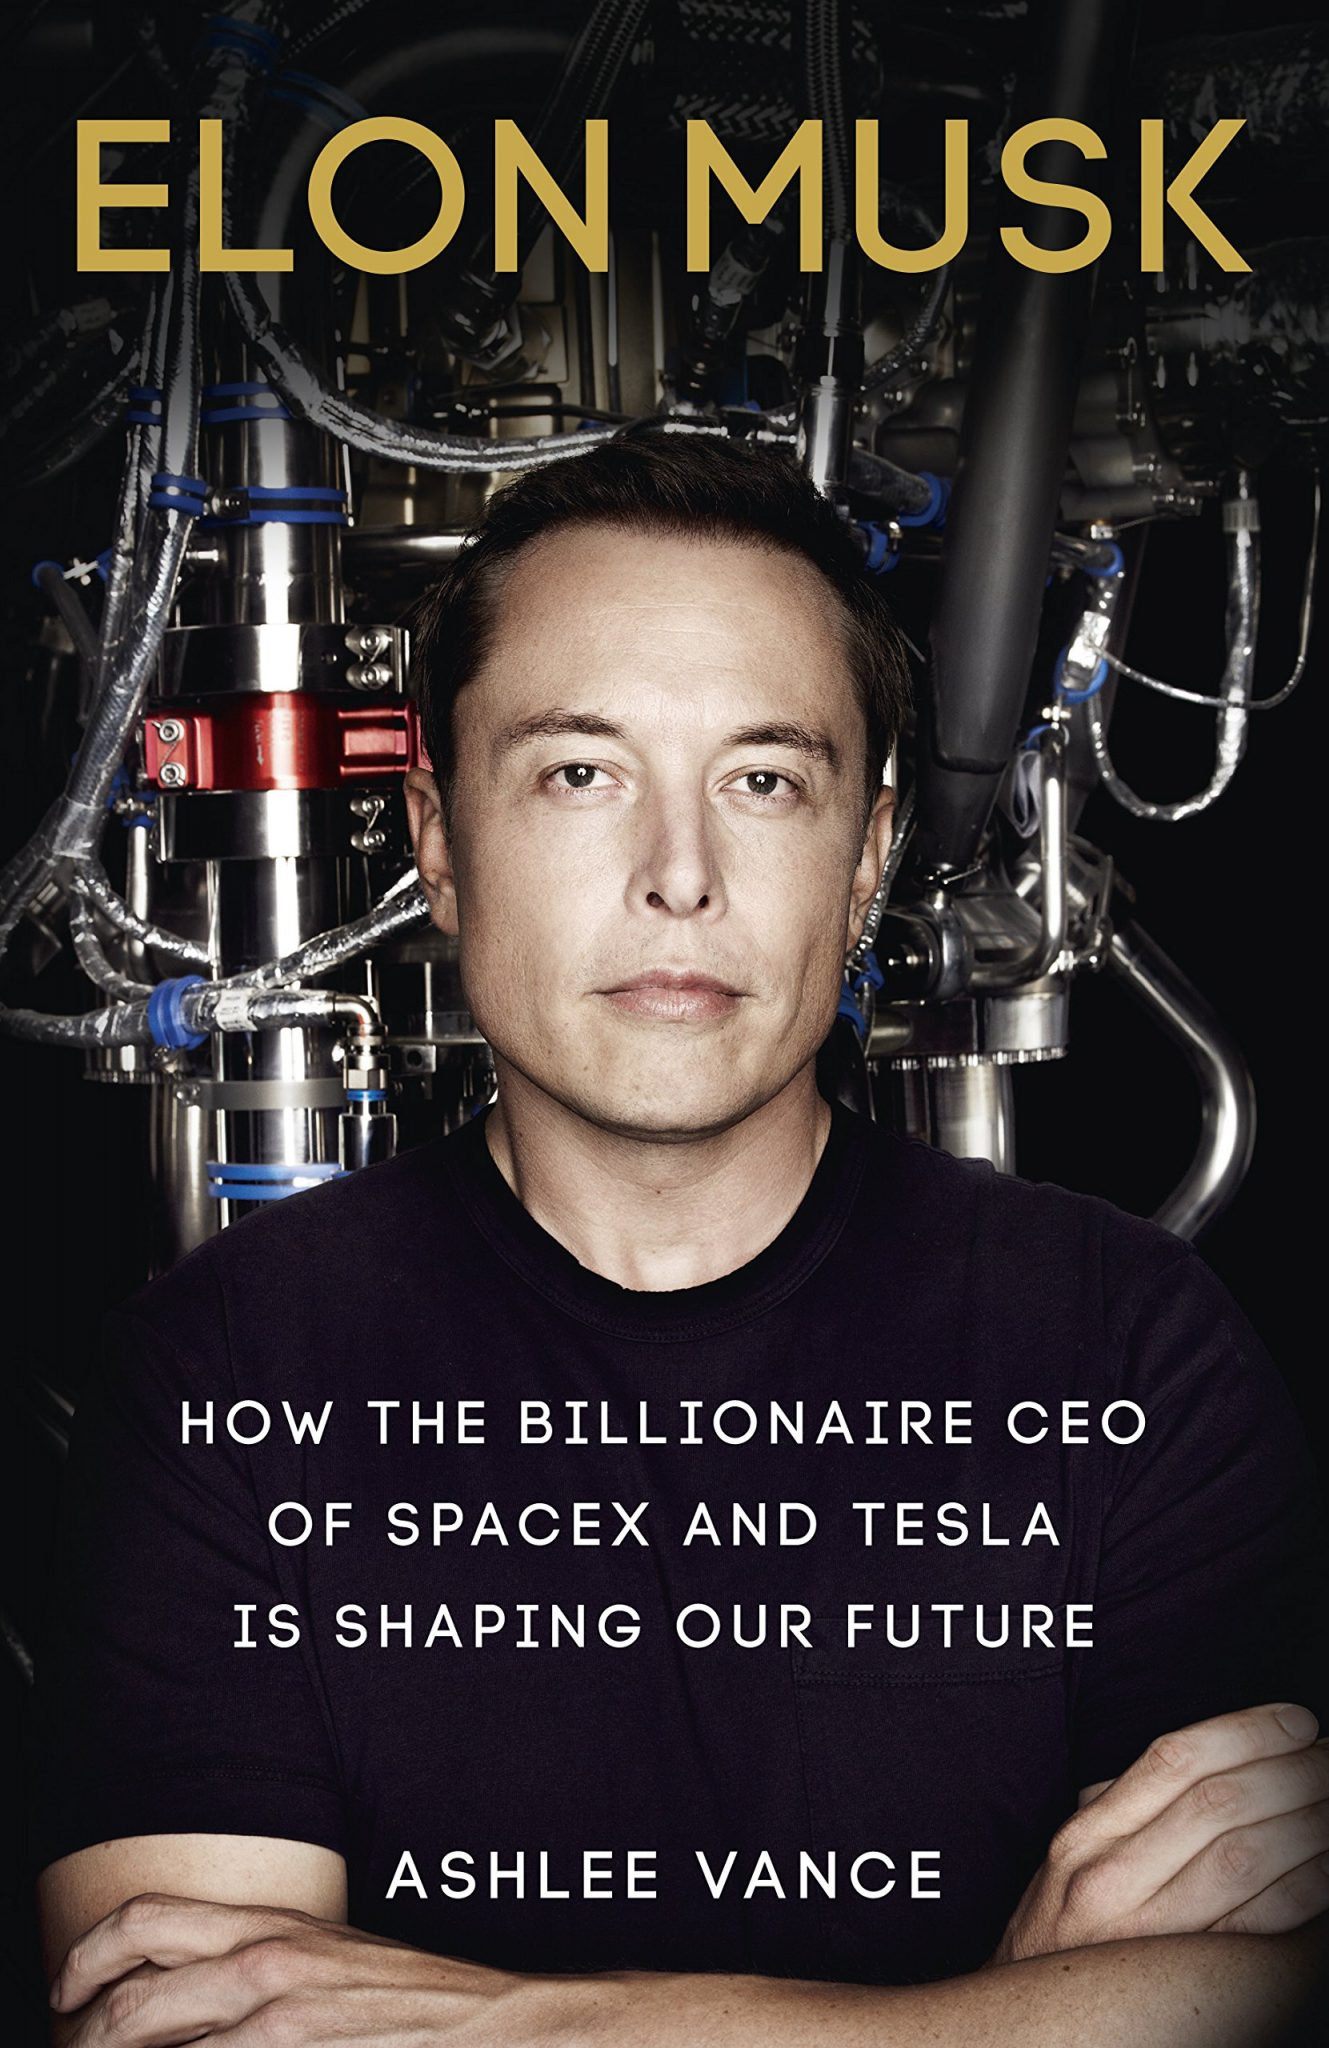 Book Review - Elon Musk How the Billionaire CEO of Spacex and Tesla is Shaping Our Future